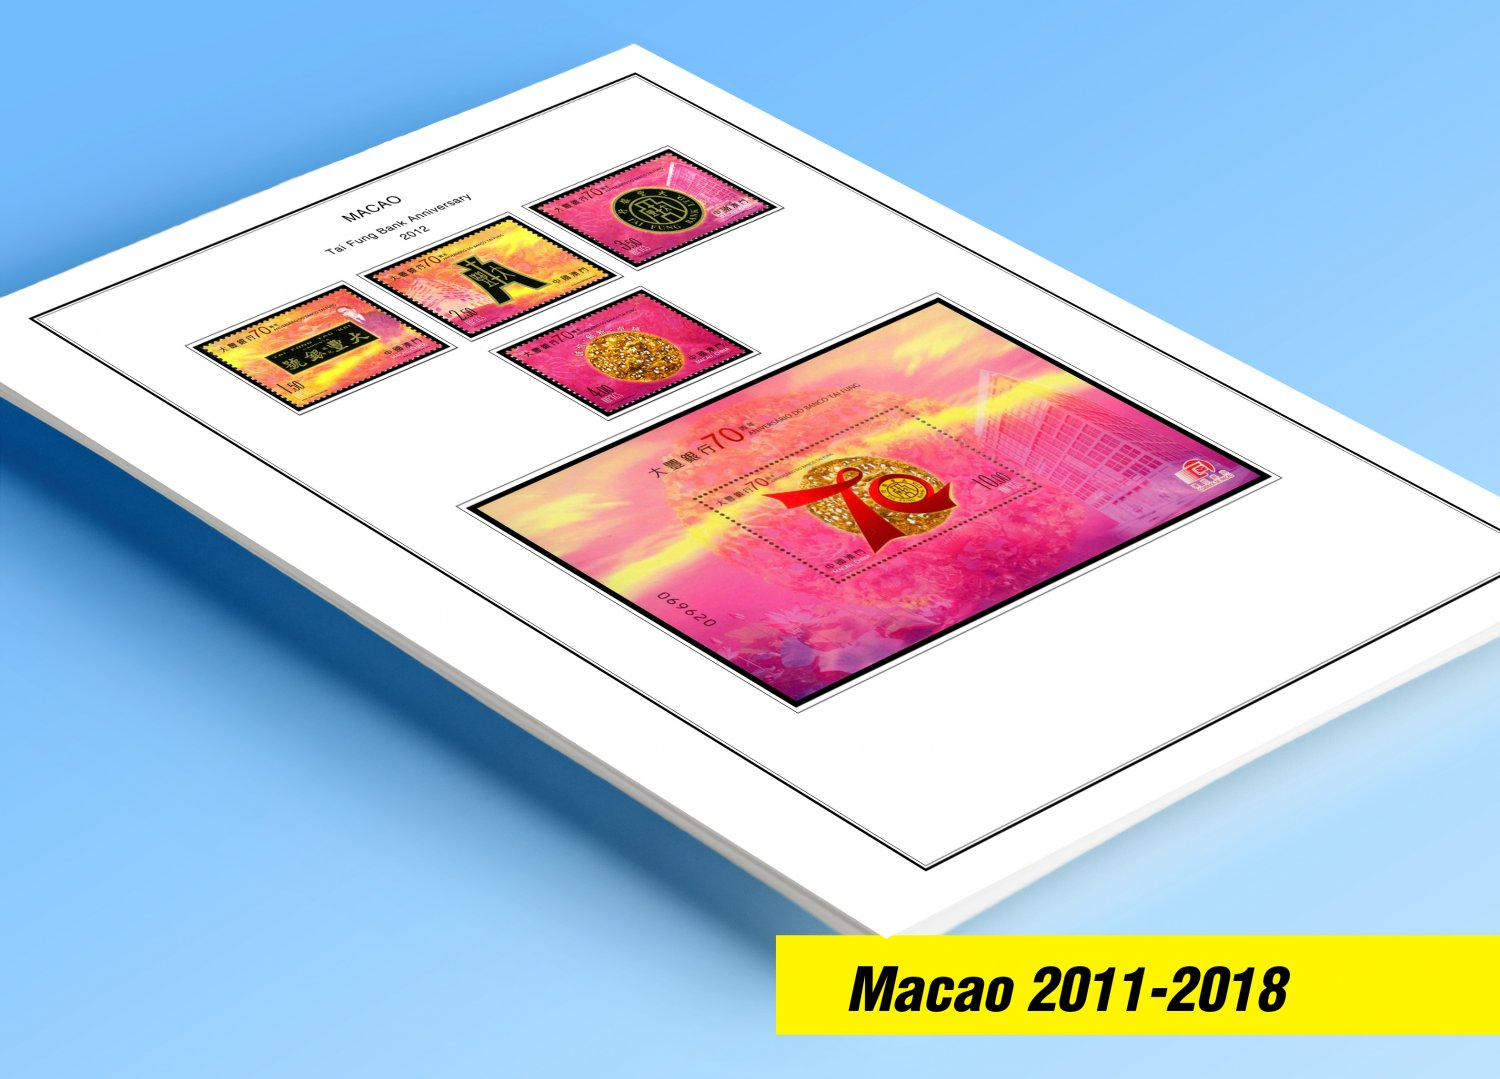 COLOR PRINTED MACAO 2011-2018 STAMP ALBUM PAGES (93 illustrated pages)